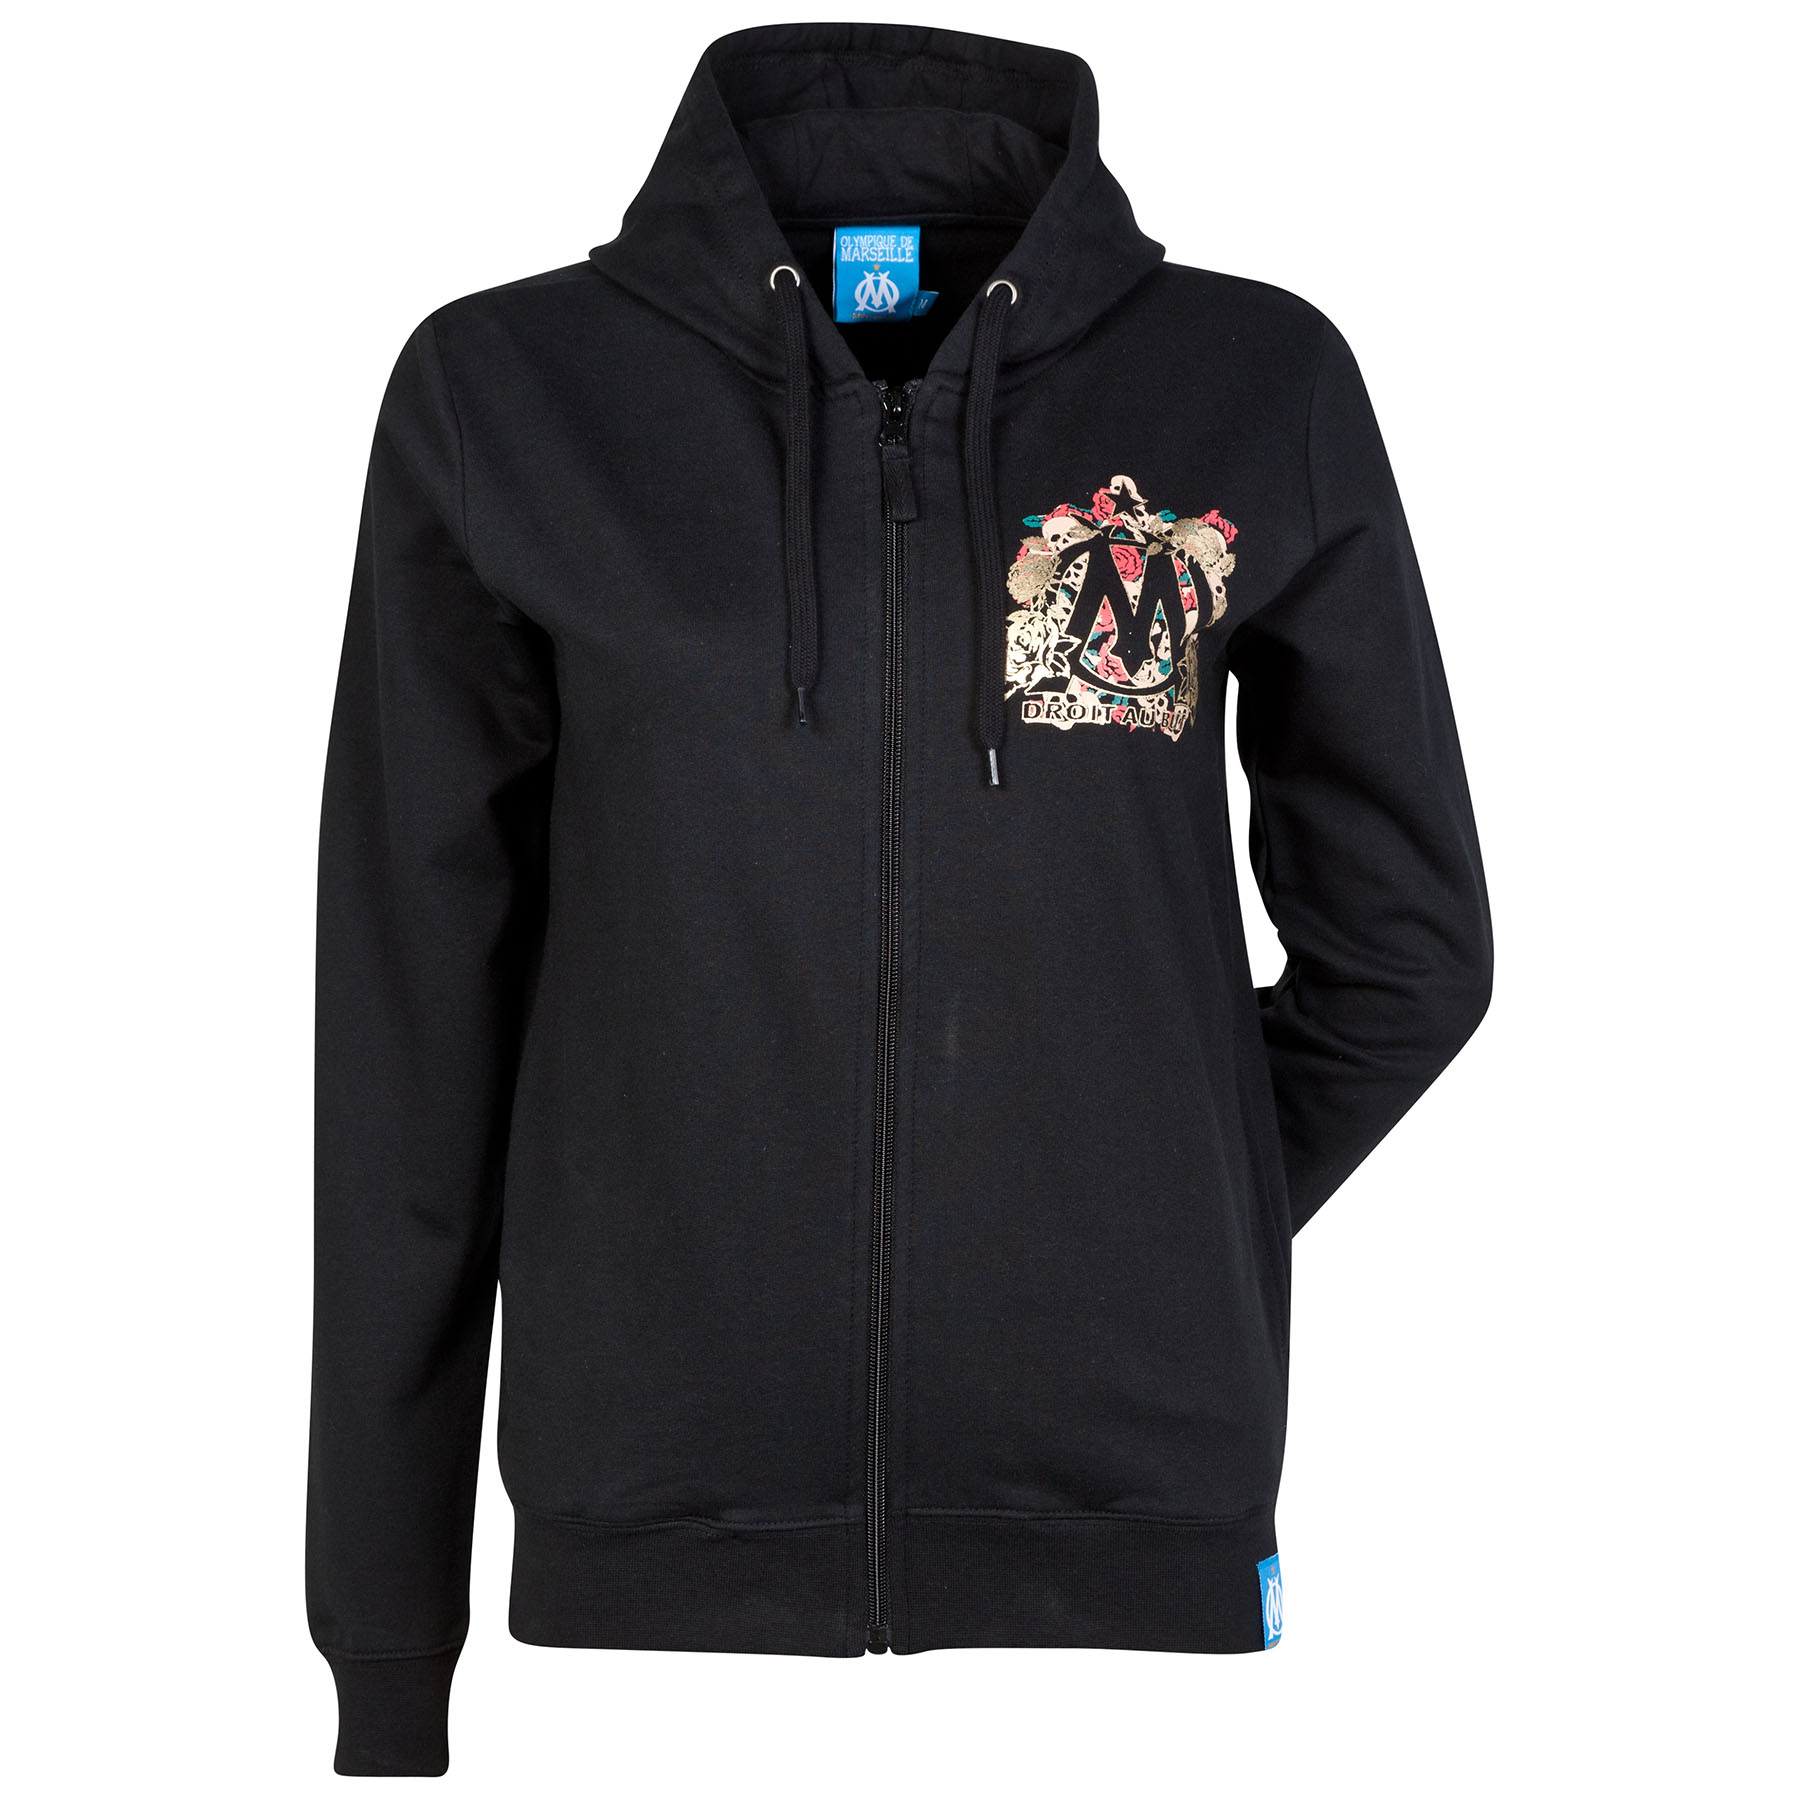 Olympique de Marseille Skull Graphic Hoodie - Black - Womens